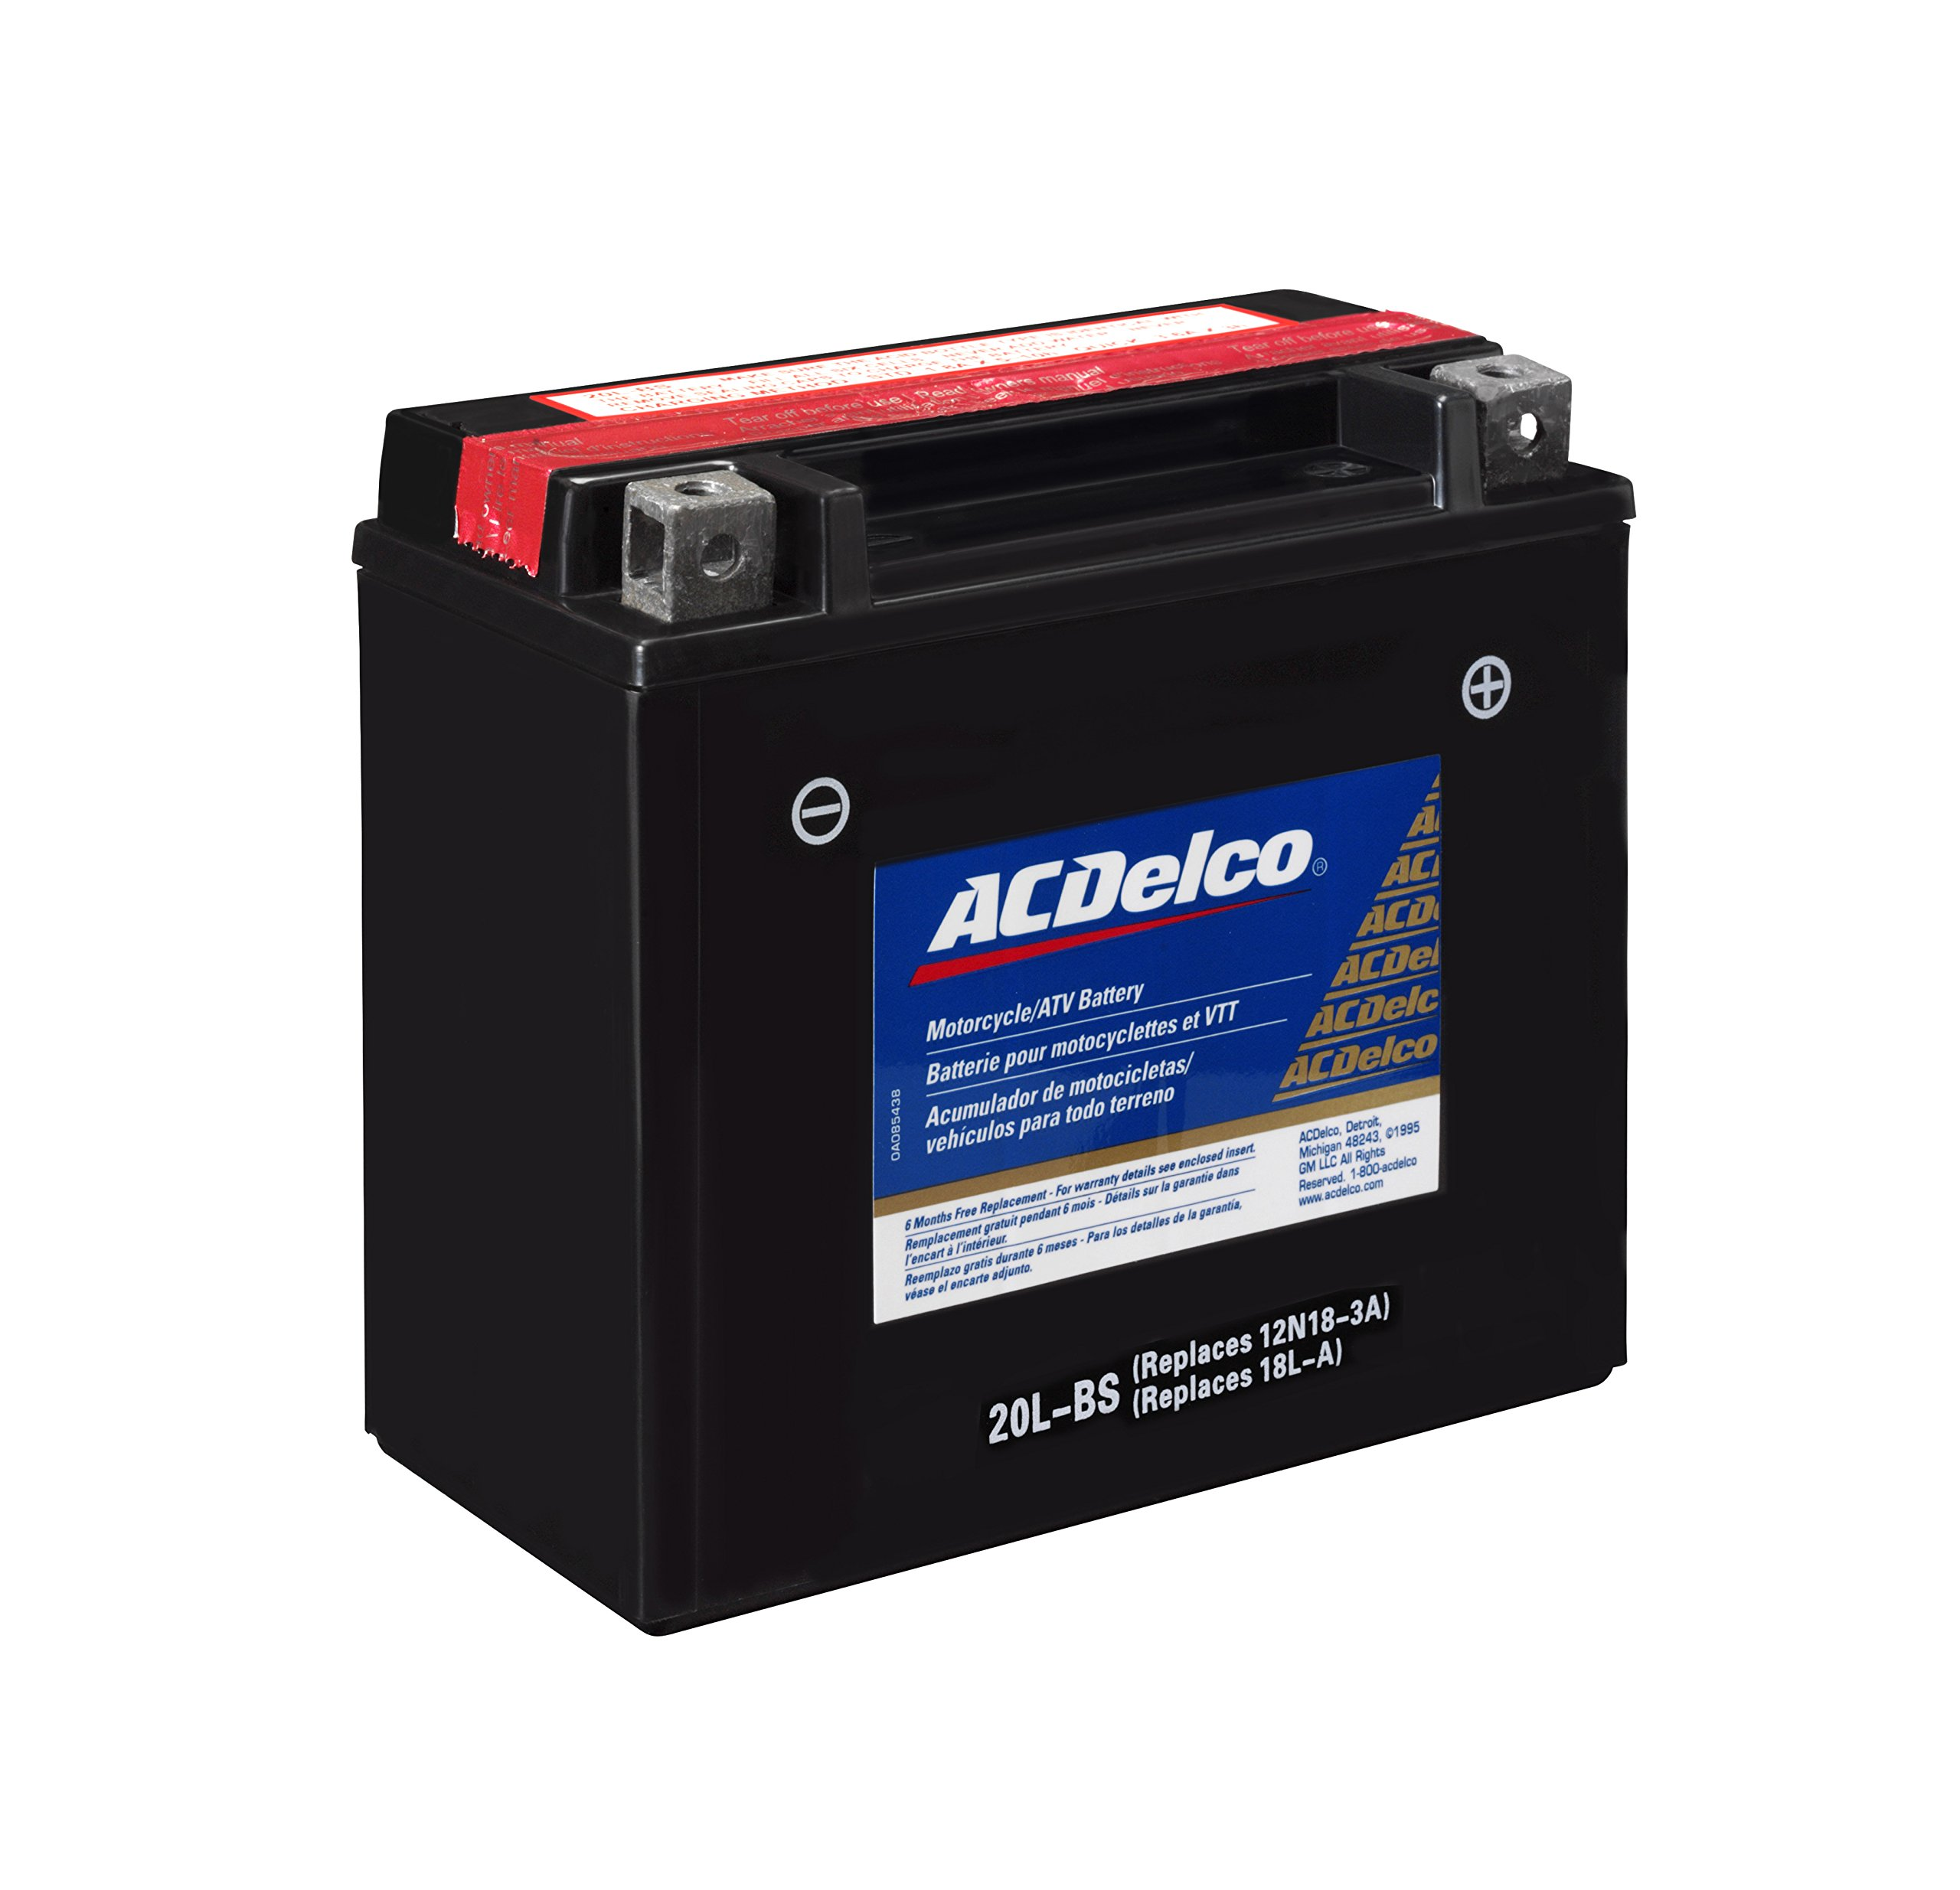 ACDelco ATX20LBS Specialty AGM Powersports JIS 20L-BS Battery by ACDelco (Image #2)